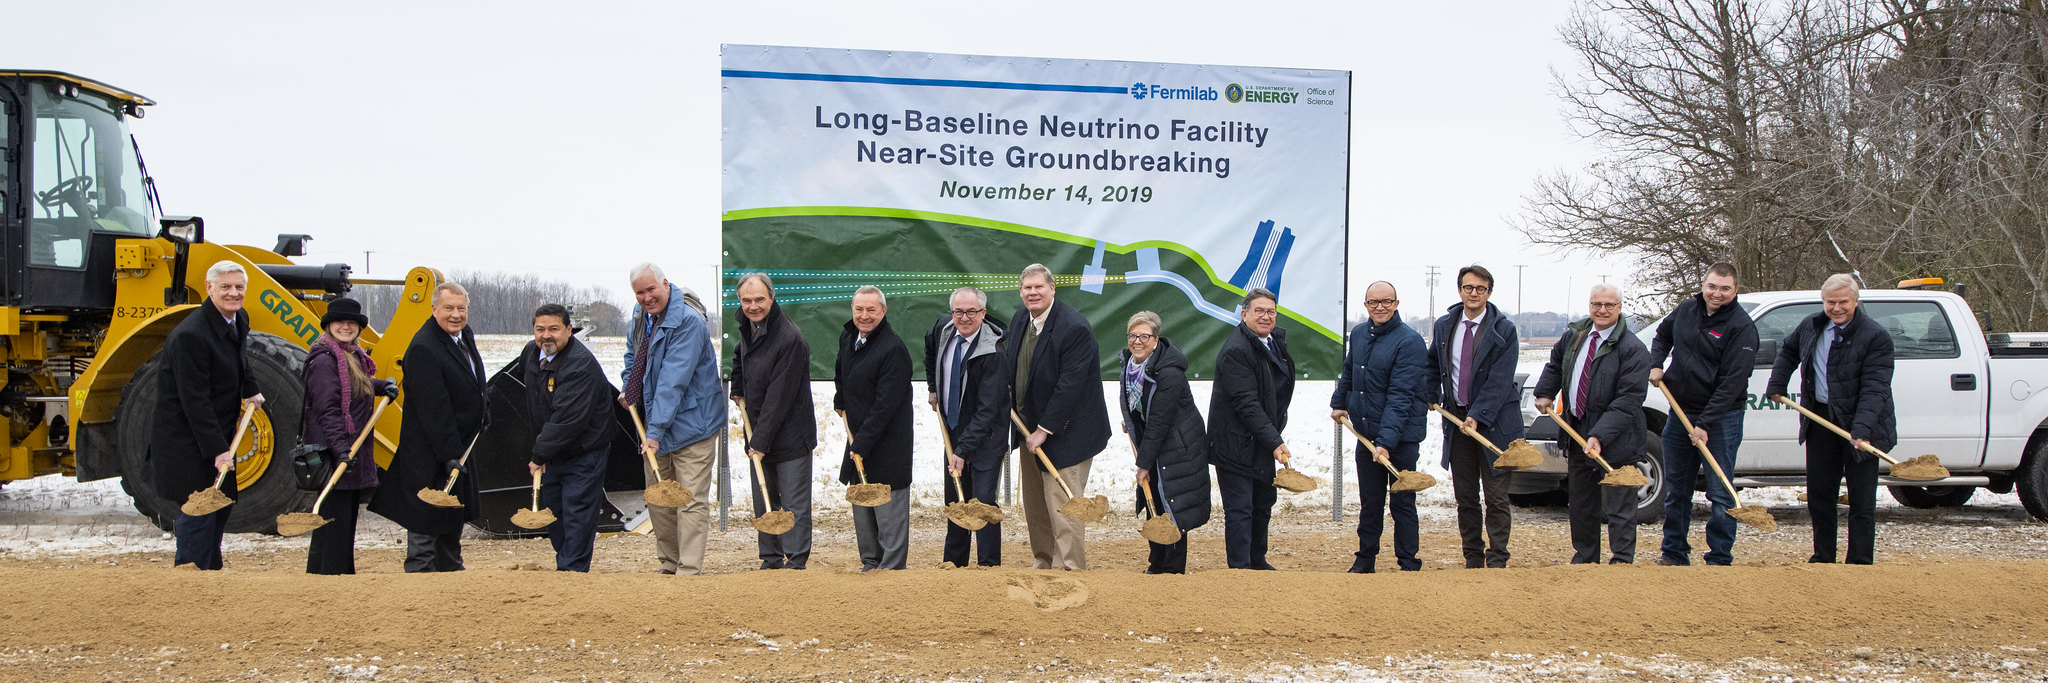 International partners join Fermilab to break ground on the Long-Baseline Neutrino Facility beamline